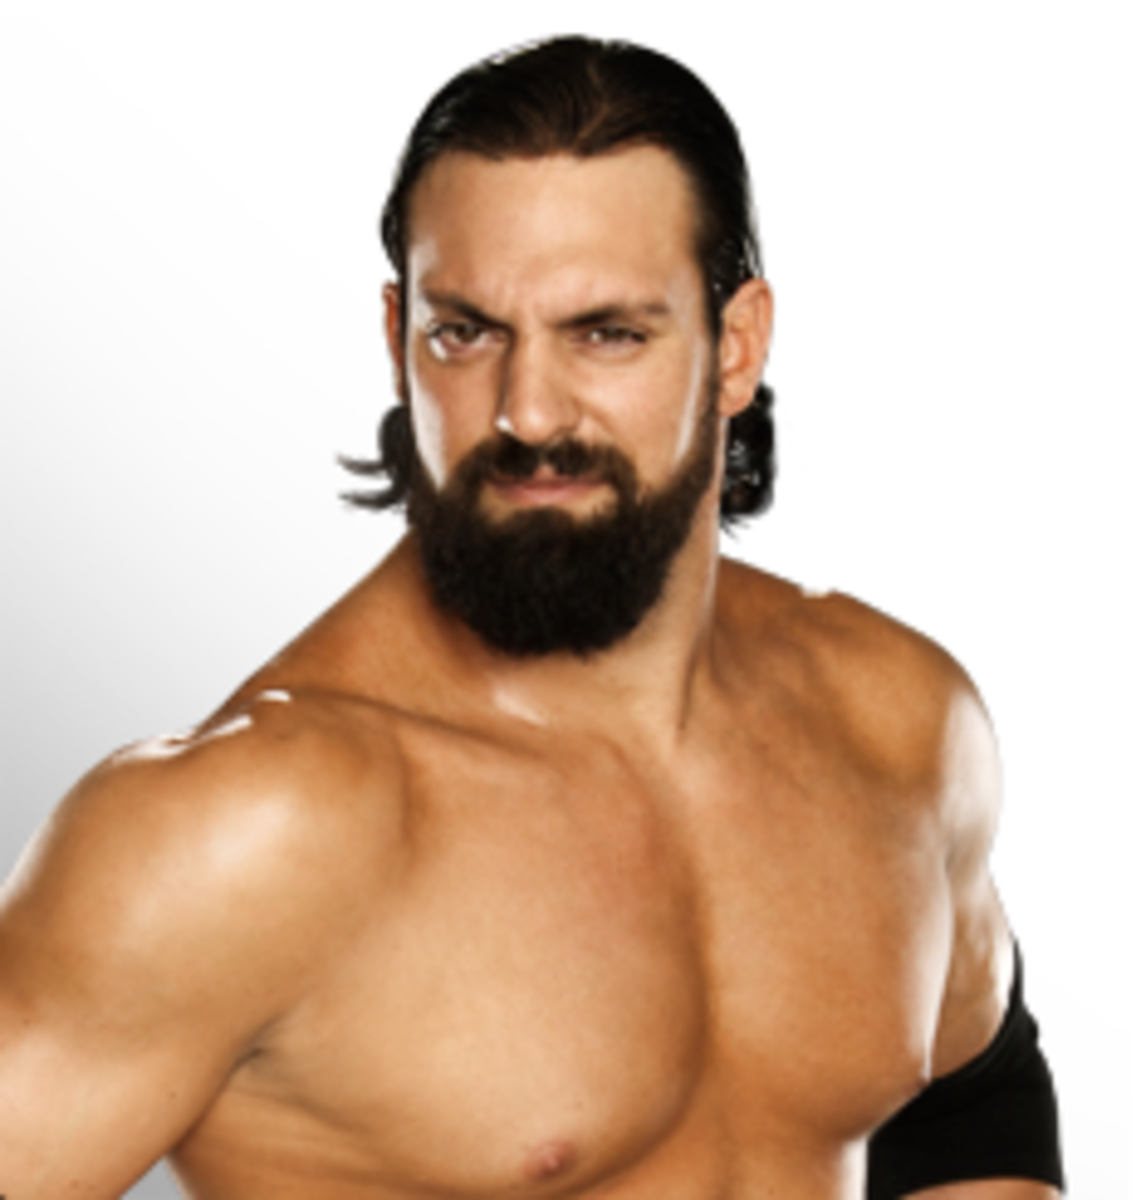 damiensandow_bio